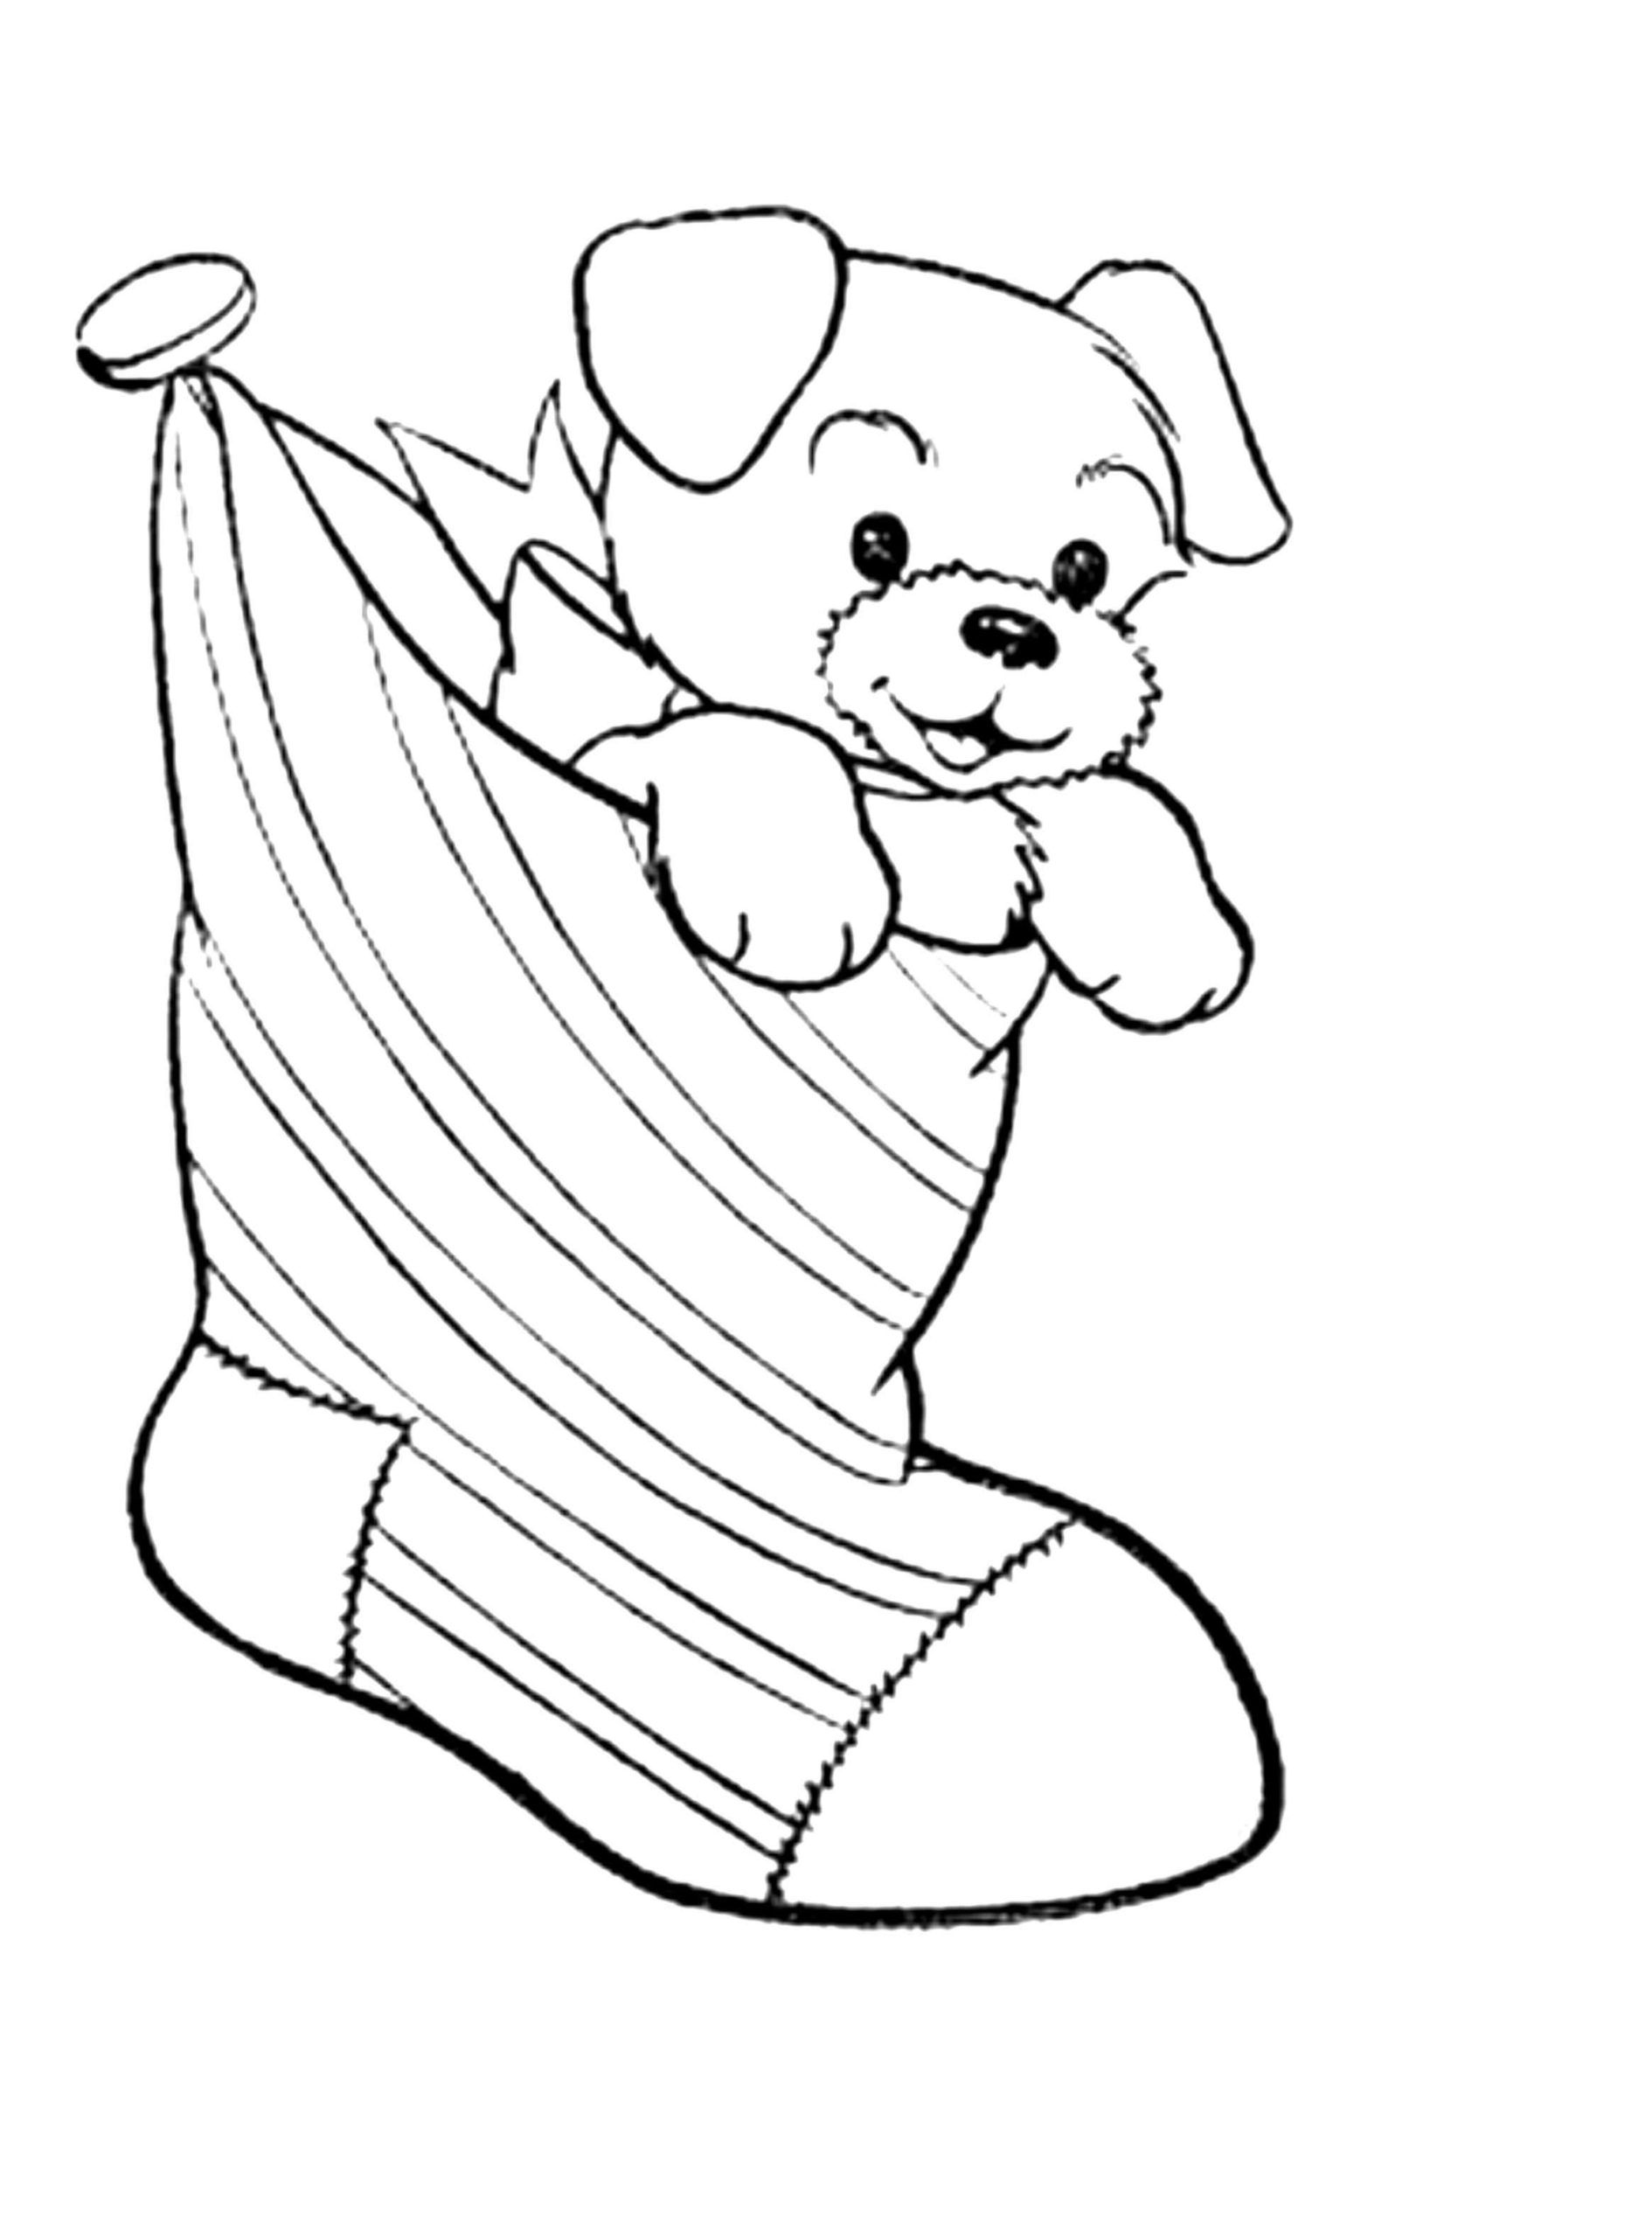 10 National Puppy Day Coloring Pages For Kids And Preschool Cute Coloring Pages Dog Coloring Page Puppy Coloring Pages